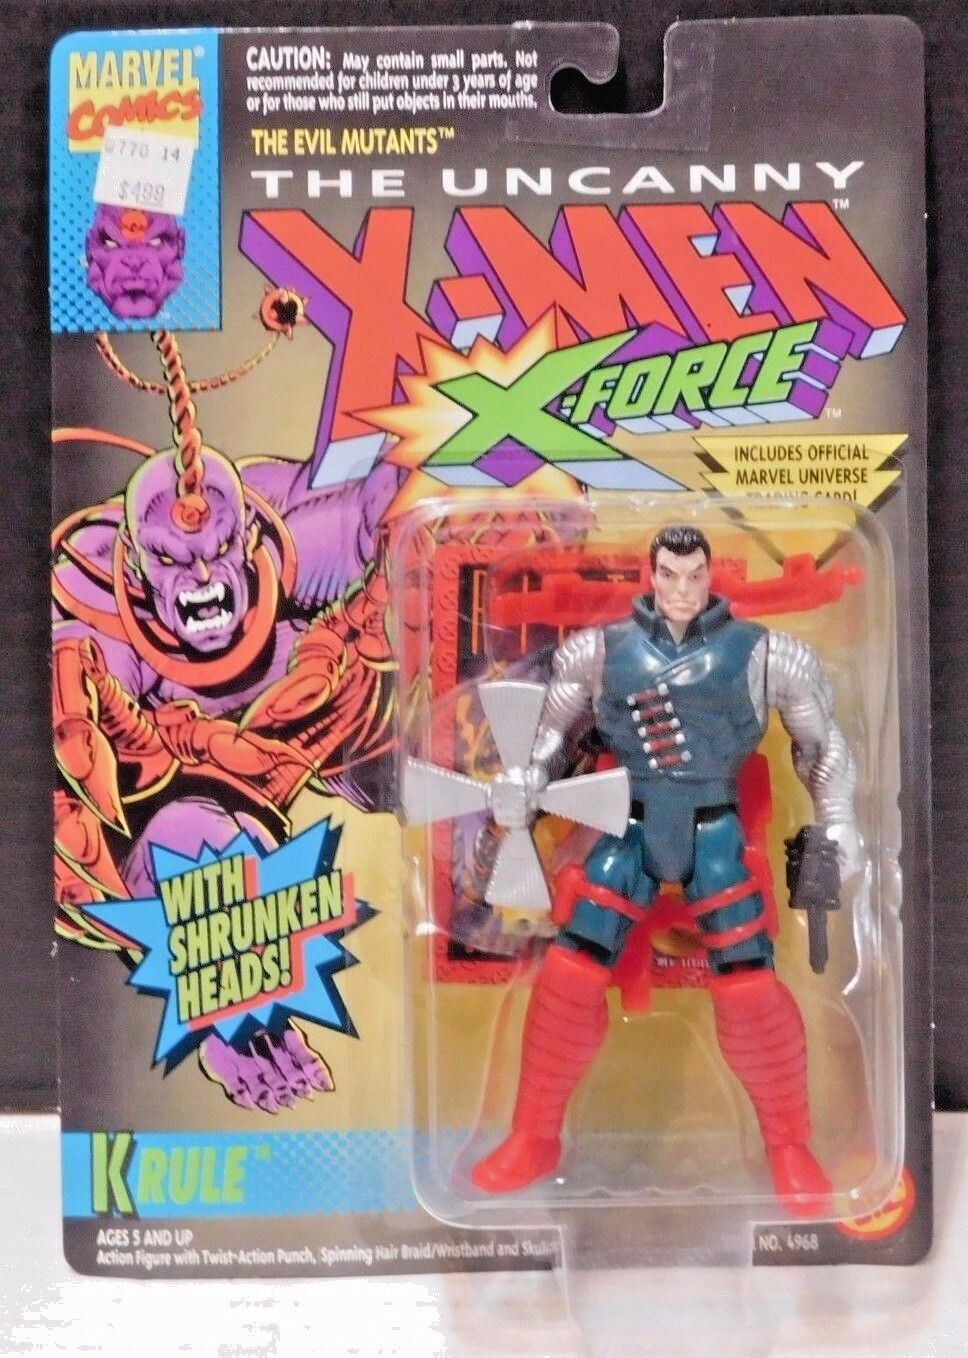 X-MEN ERROR Kane in Krule pkg Marvel Comics TOY BIZ Uncanny X-Force